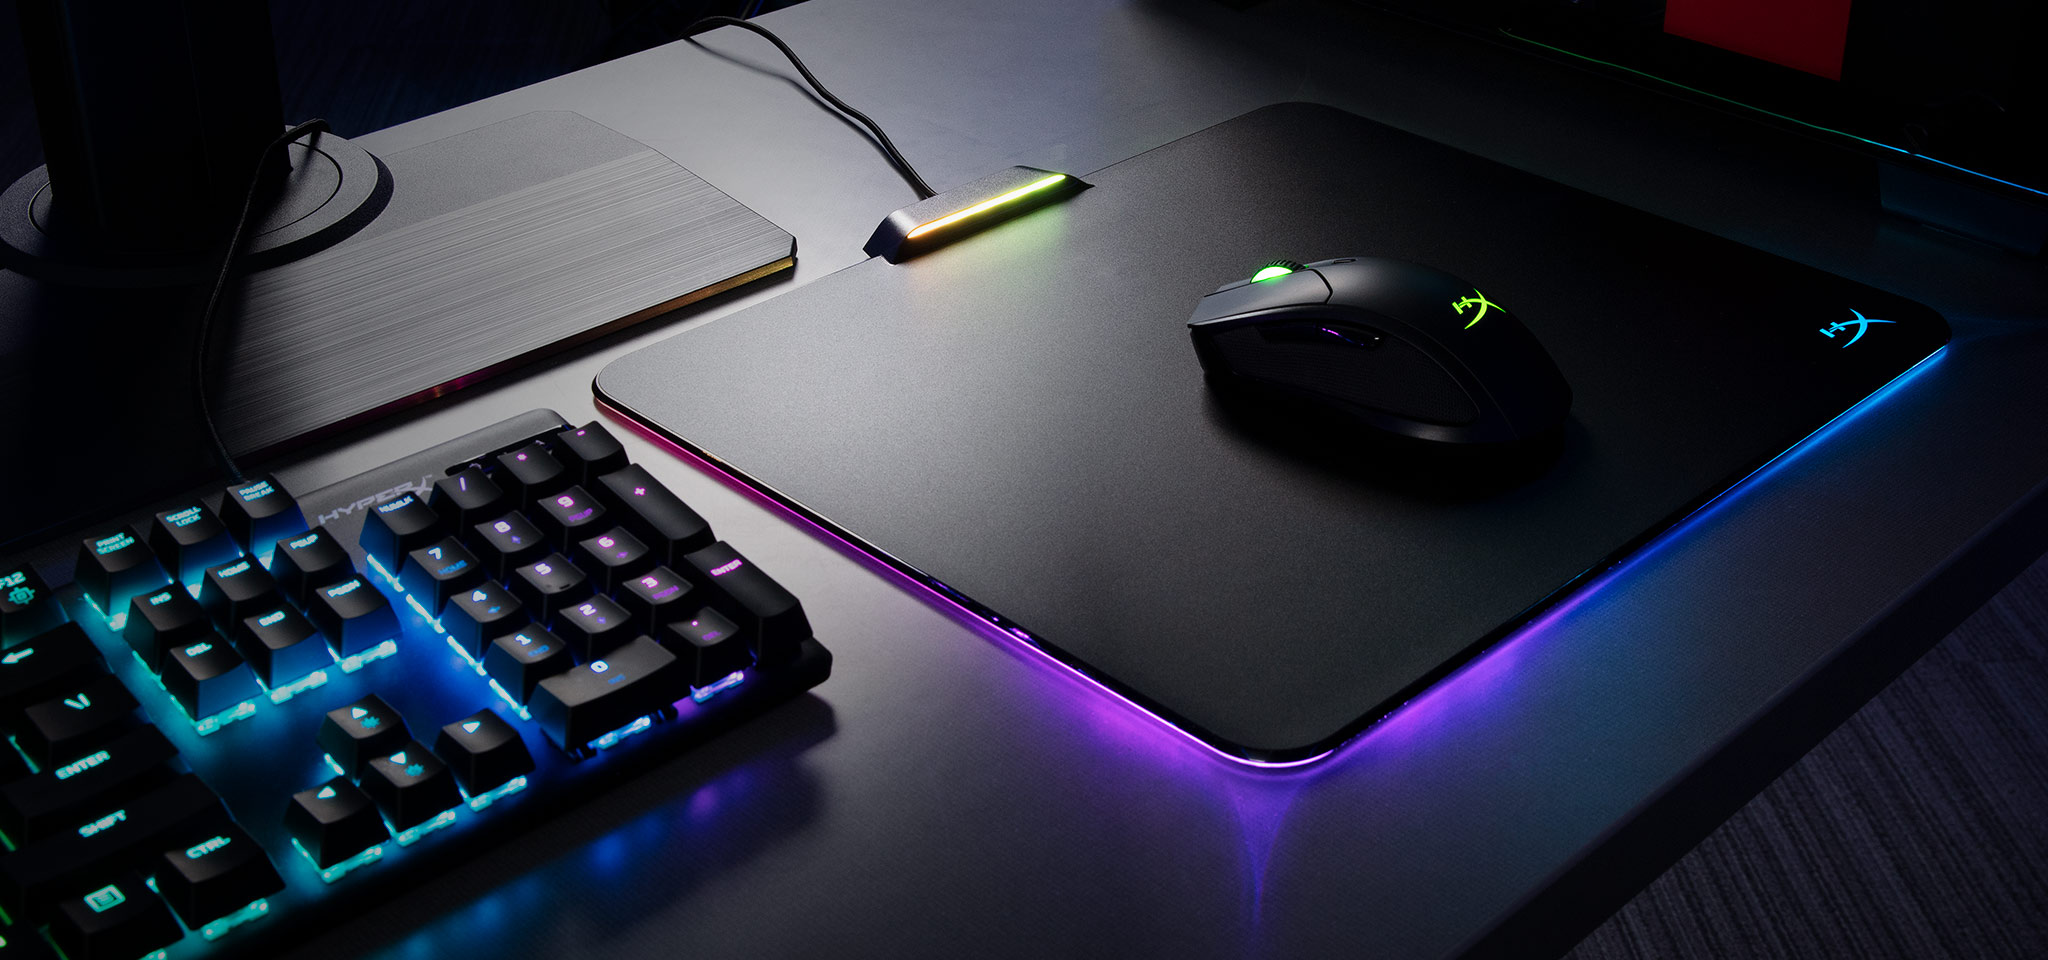 Hx hero mousepad fury ultra lg